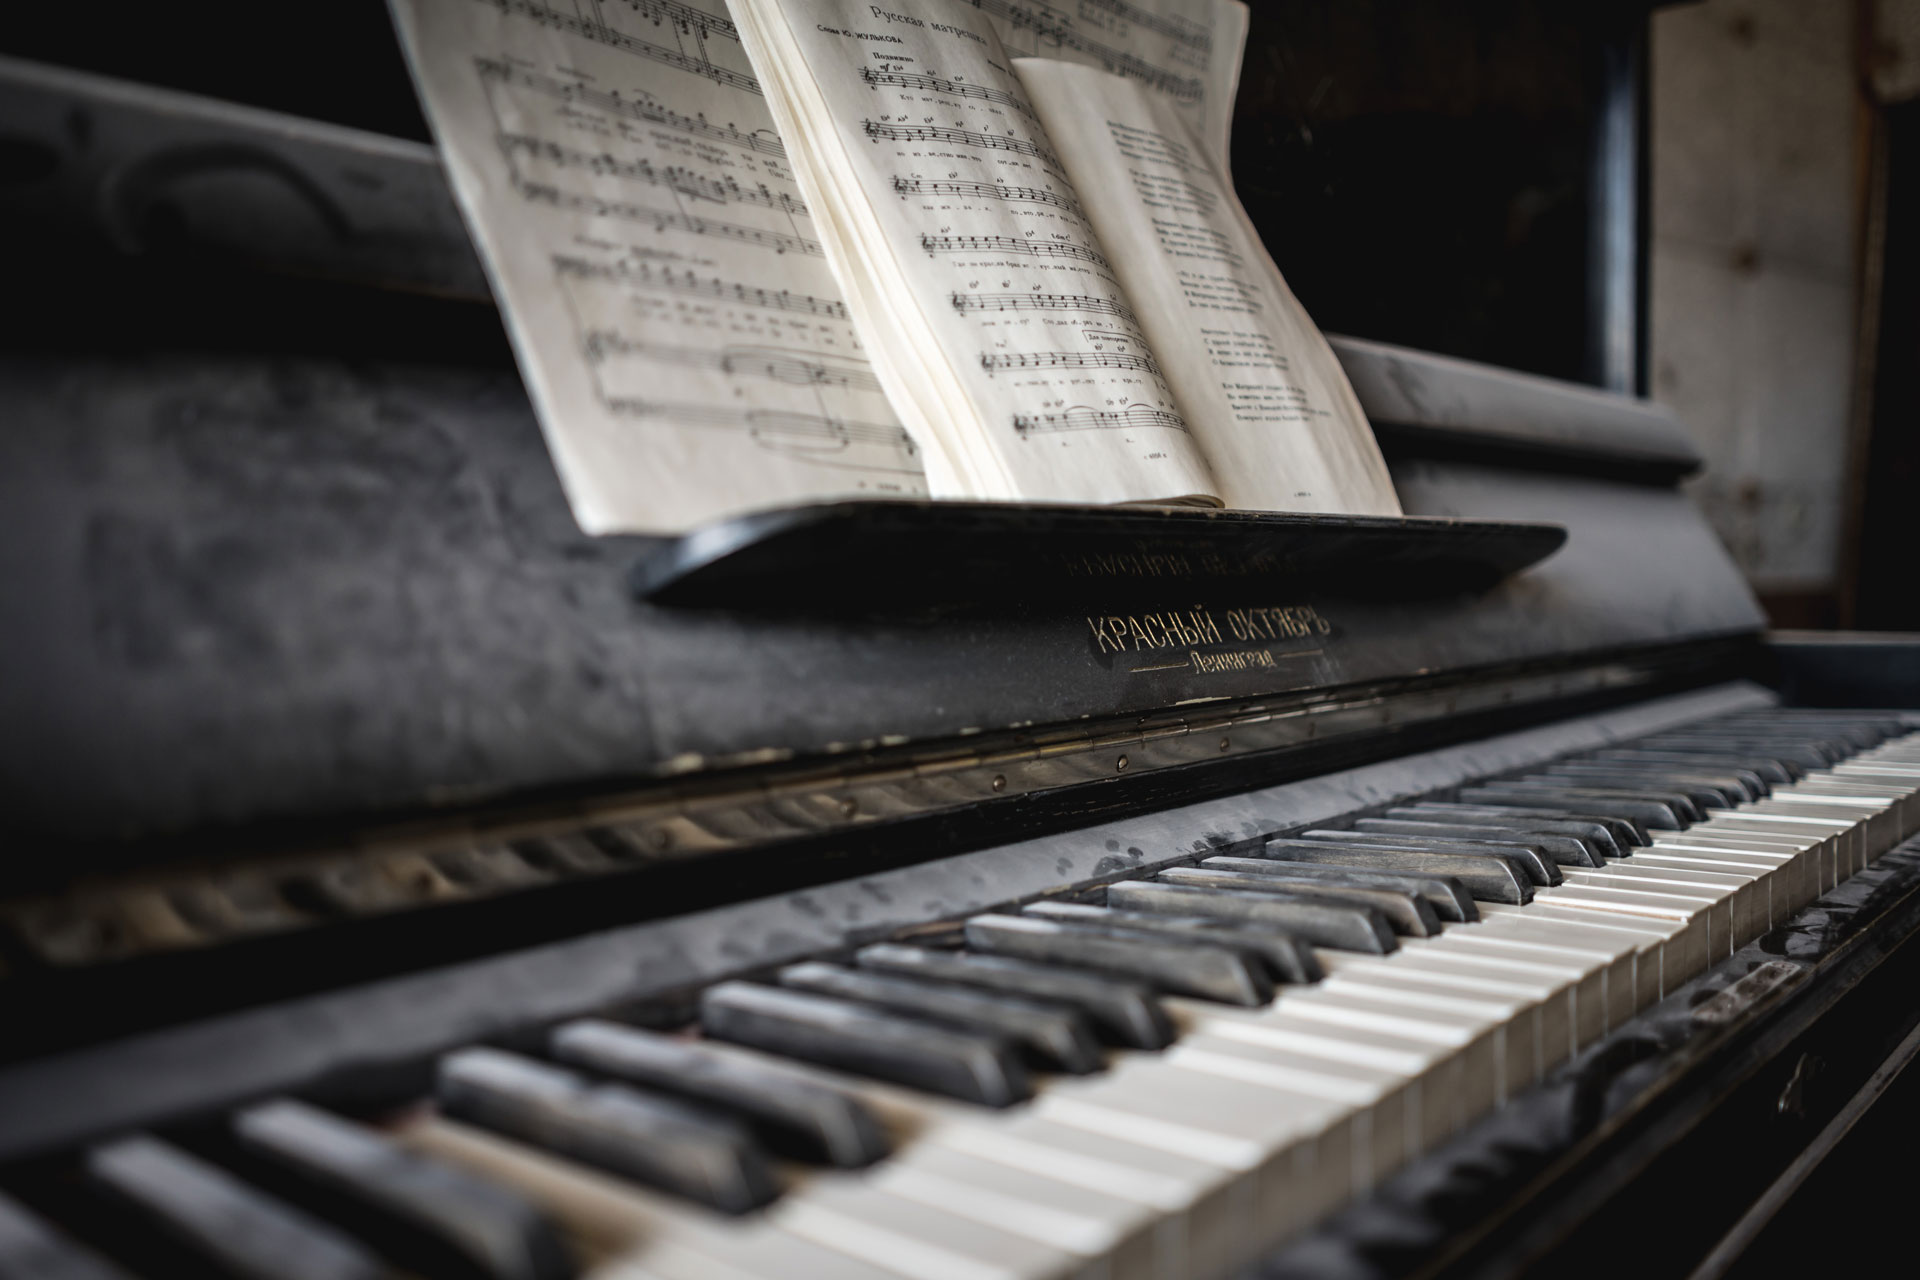 piano-ology-piano-technique-principles-of-velocity-featured-photo-by-patrick-schneider-on-unsplash